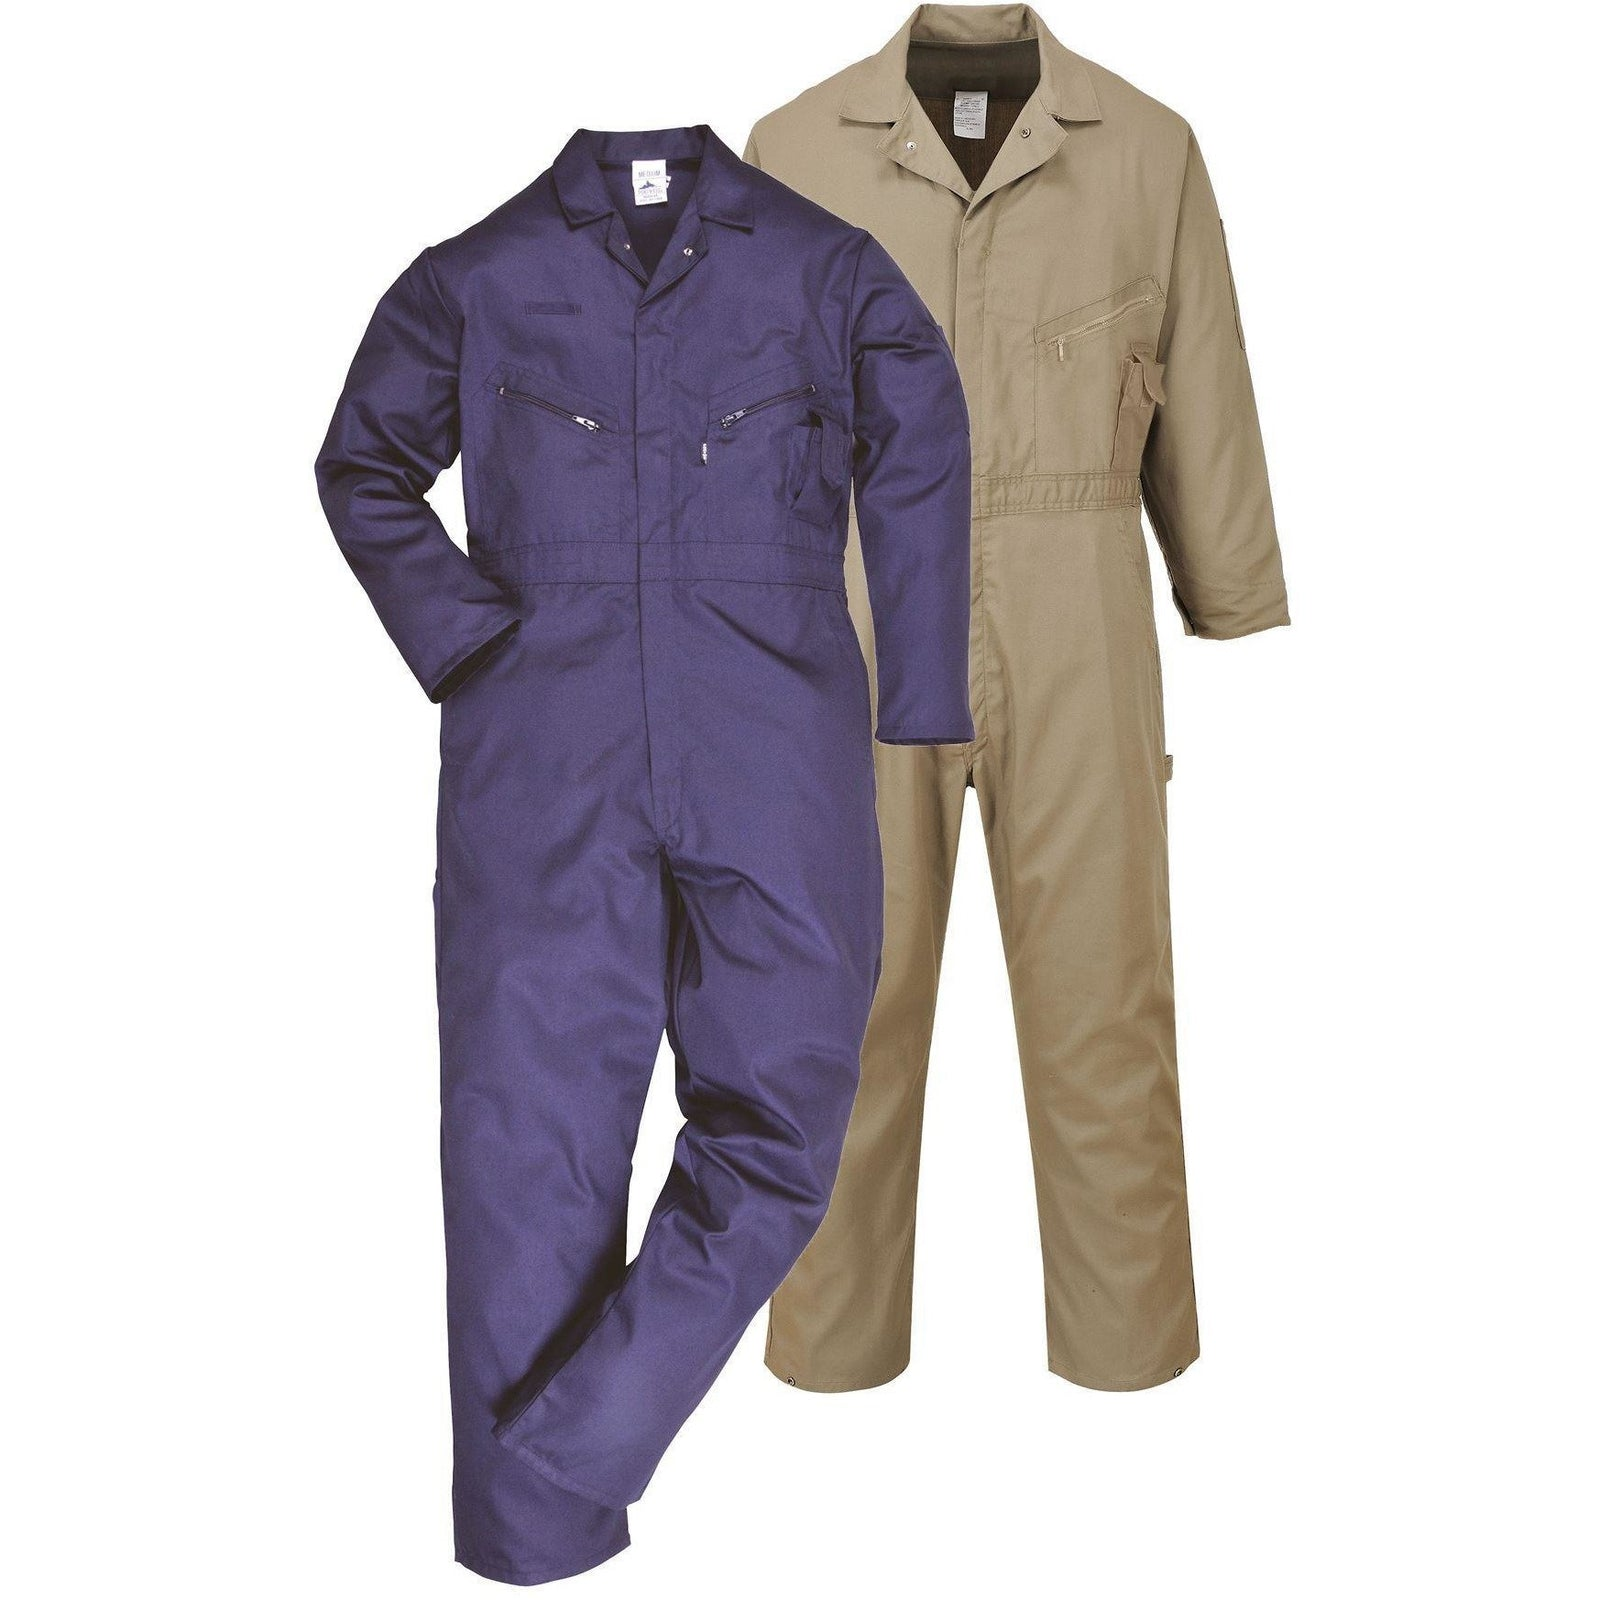 Portwest Dubai Coverall C812 - reid outdoors